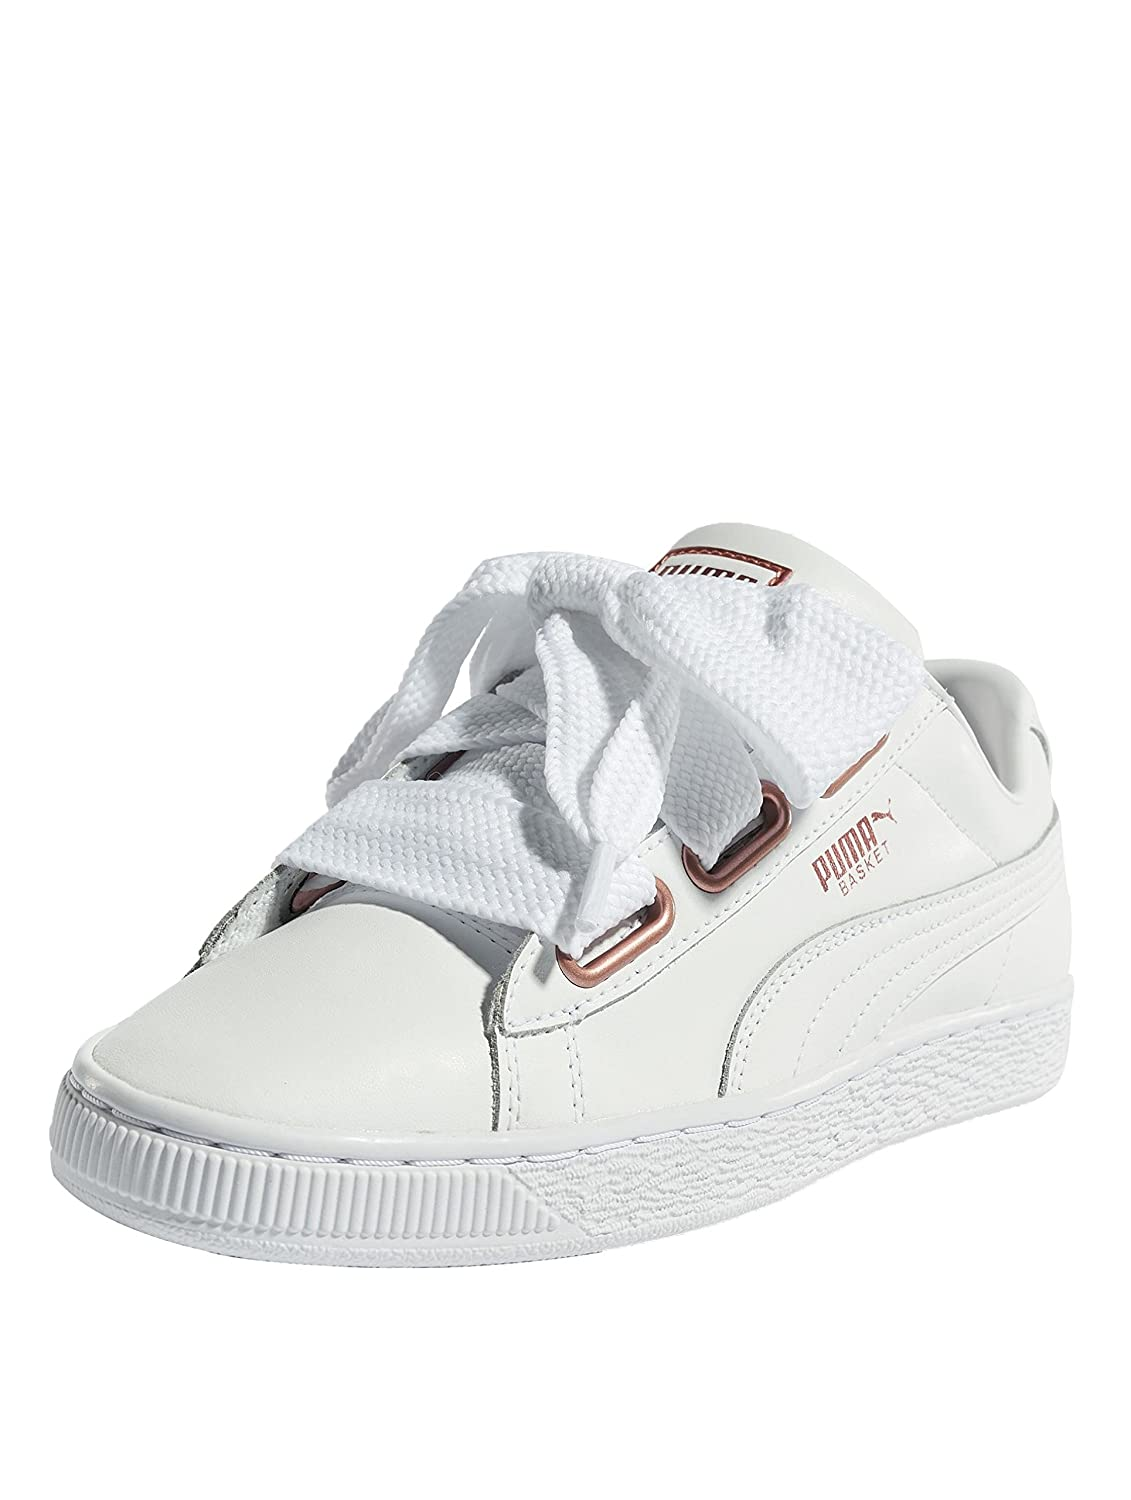 Puma Damen Basket Heart Leather WNs Sneaker  37.5 EU|Wei? (Puma White-rose Gold 01)